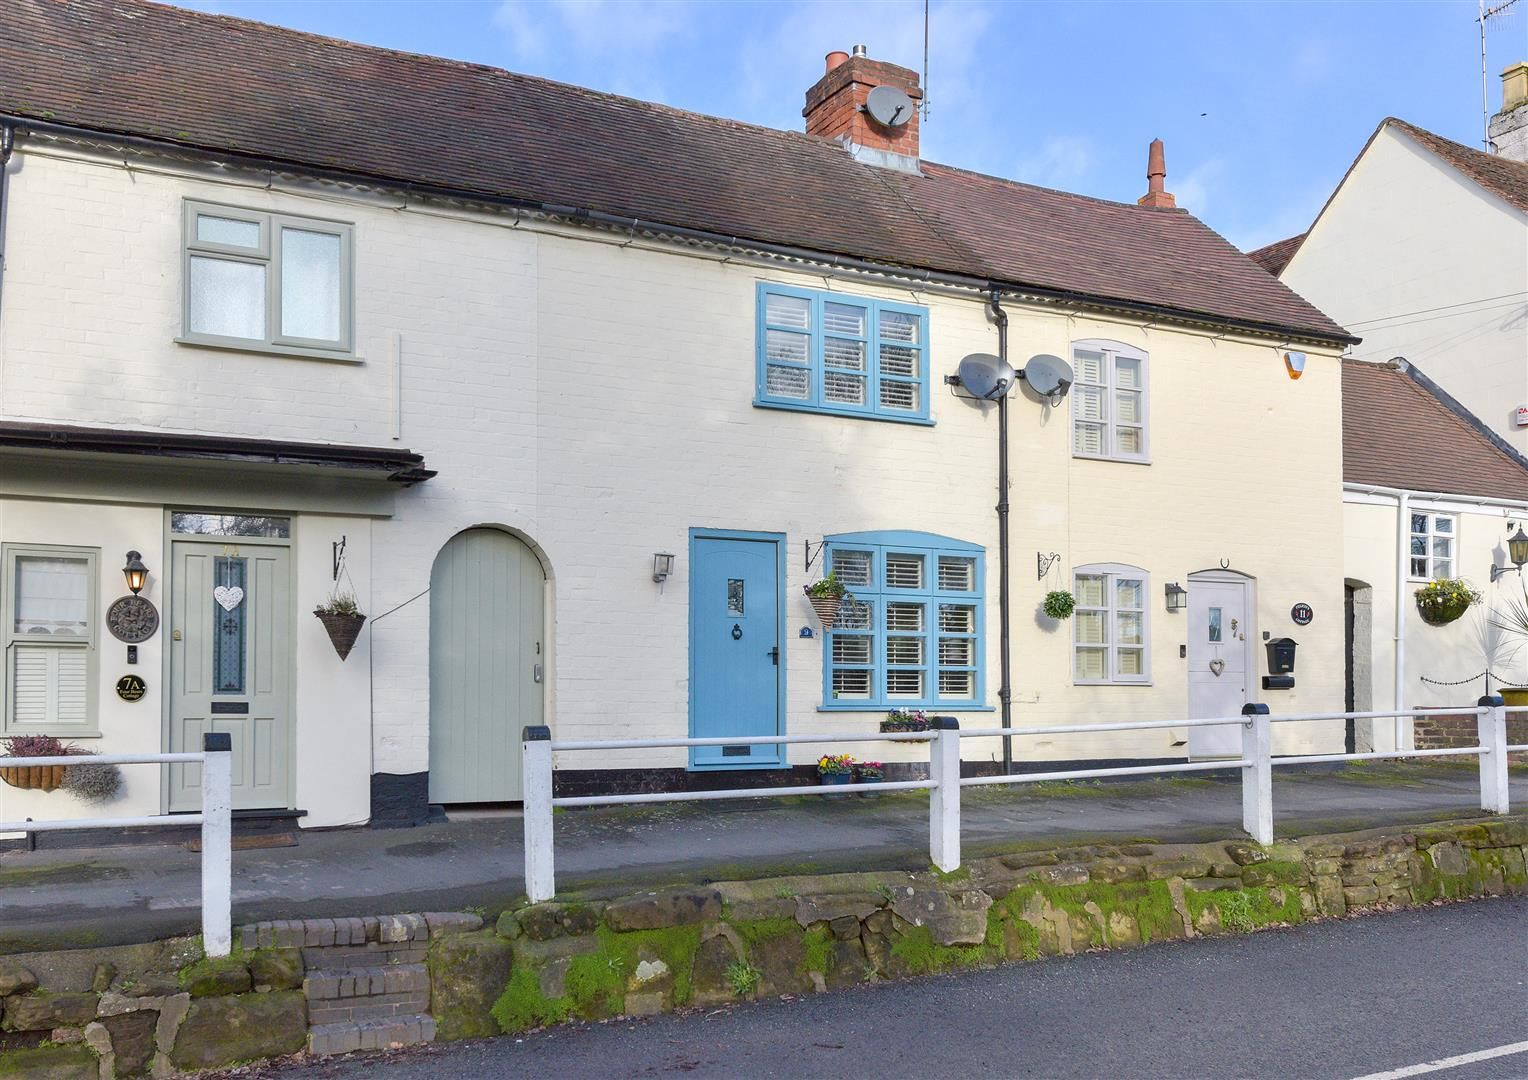 2 bed terraced for sale in Belbroughton, DY9